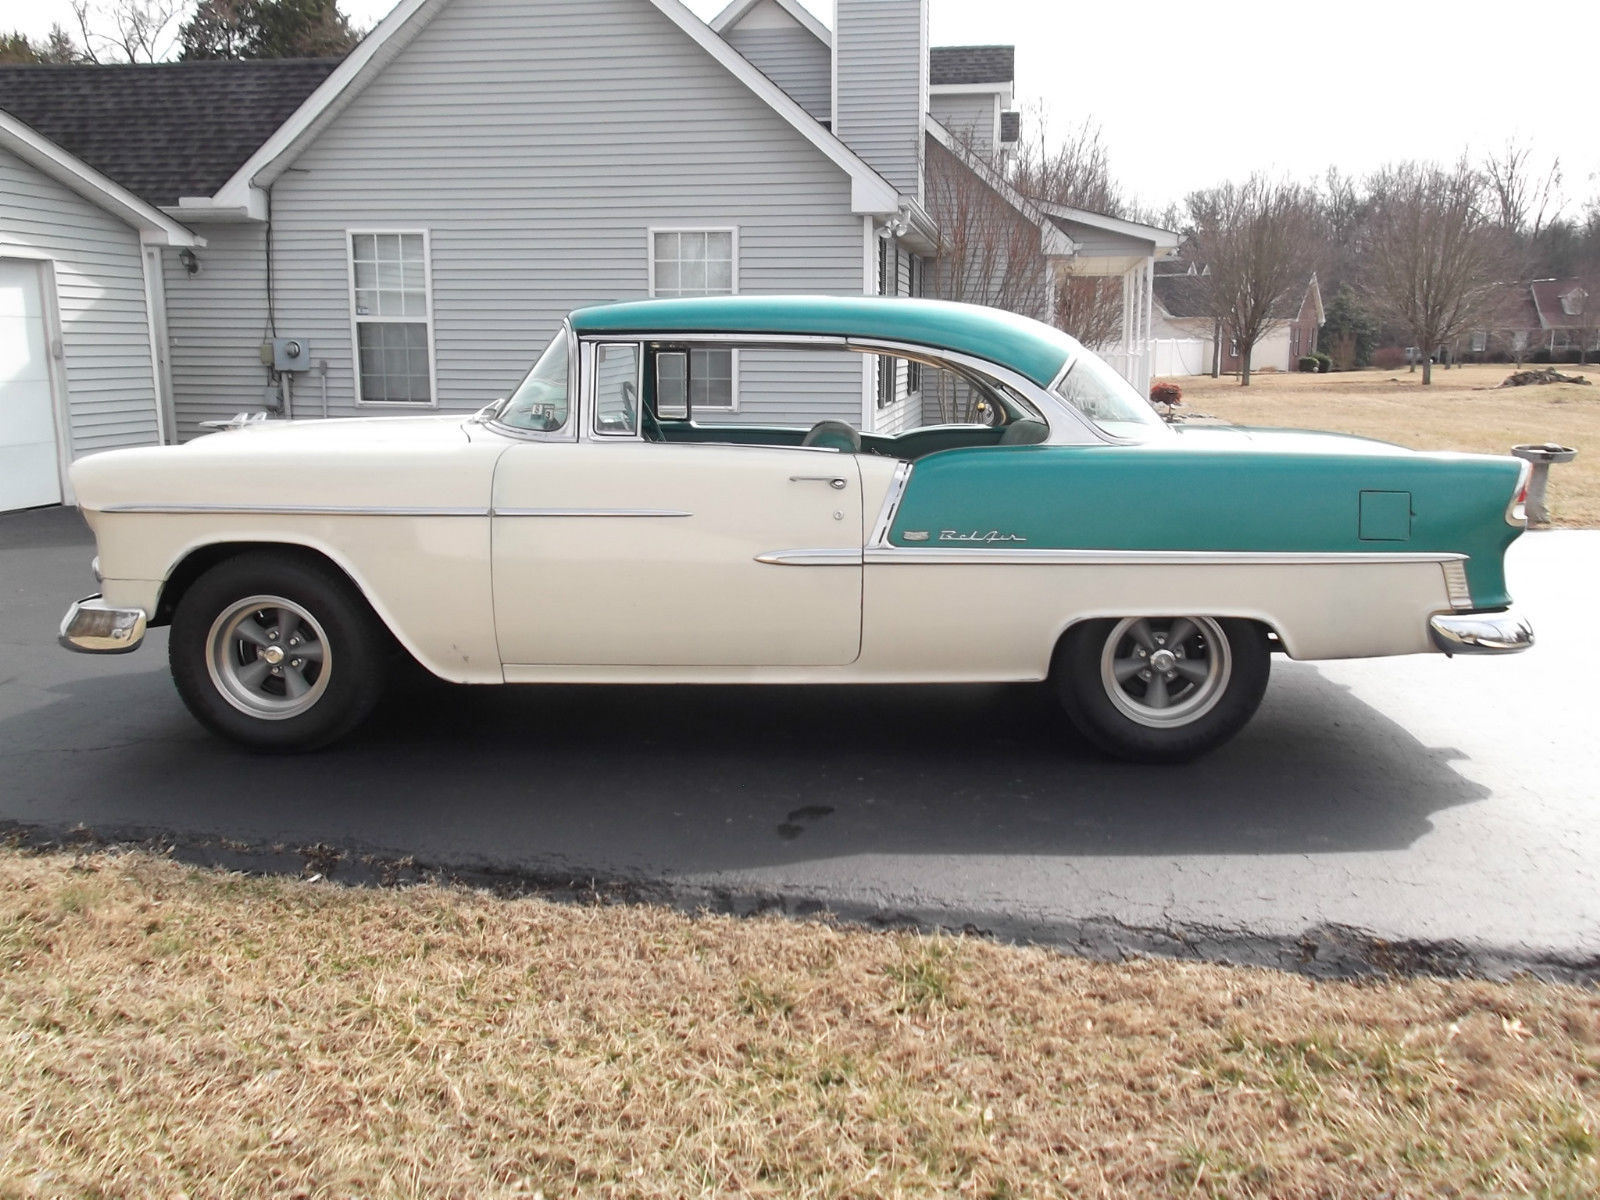 1955 Chevy Bel Air Two Door Hardtop 58000 Original Miles Chevrolet 4 Paint Rare